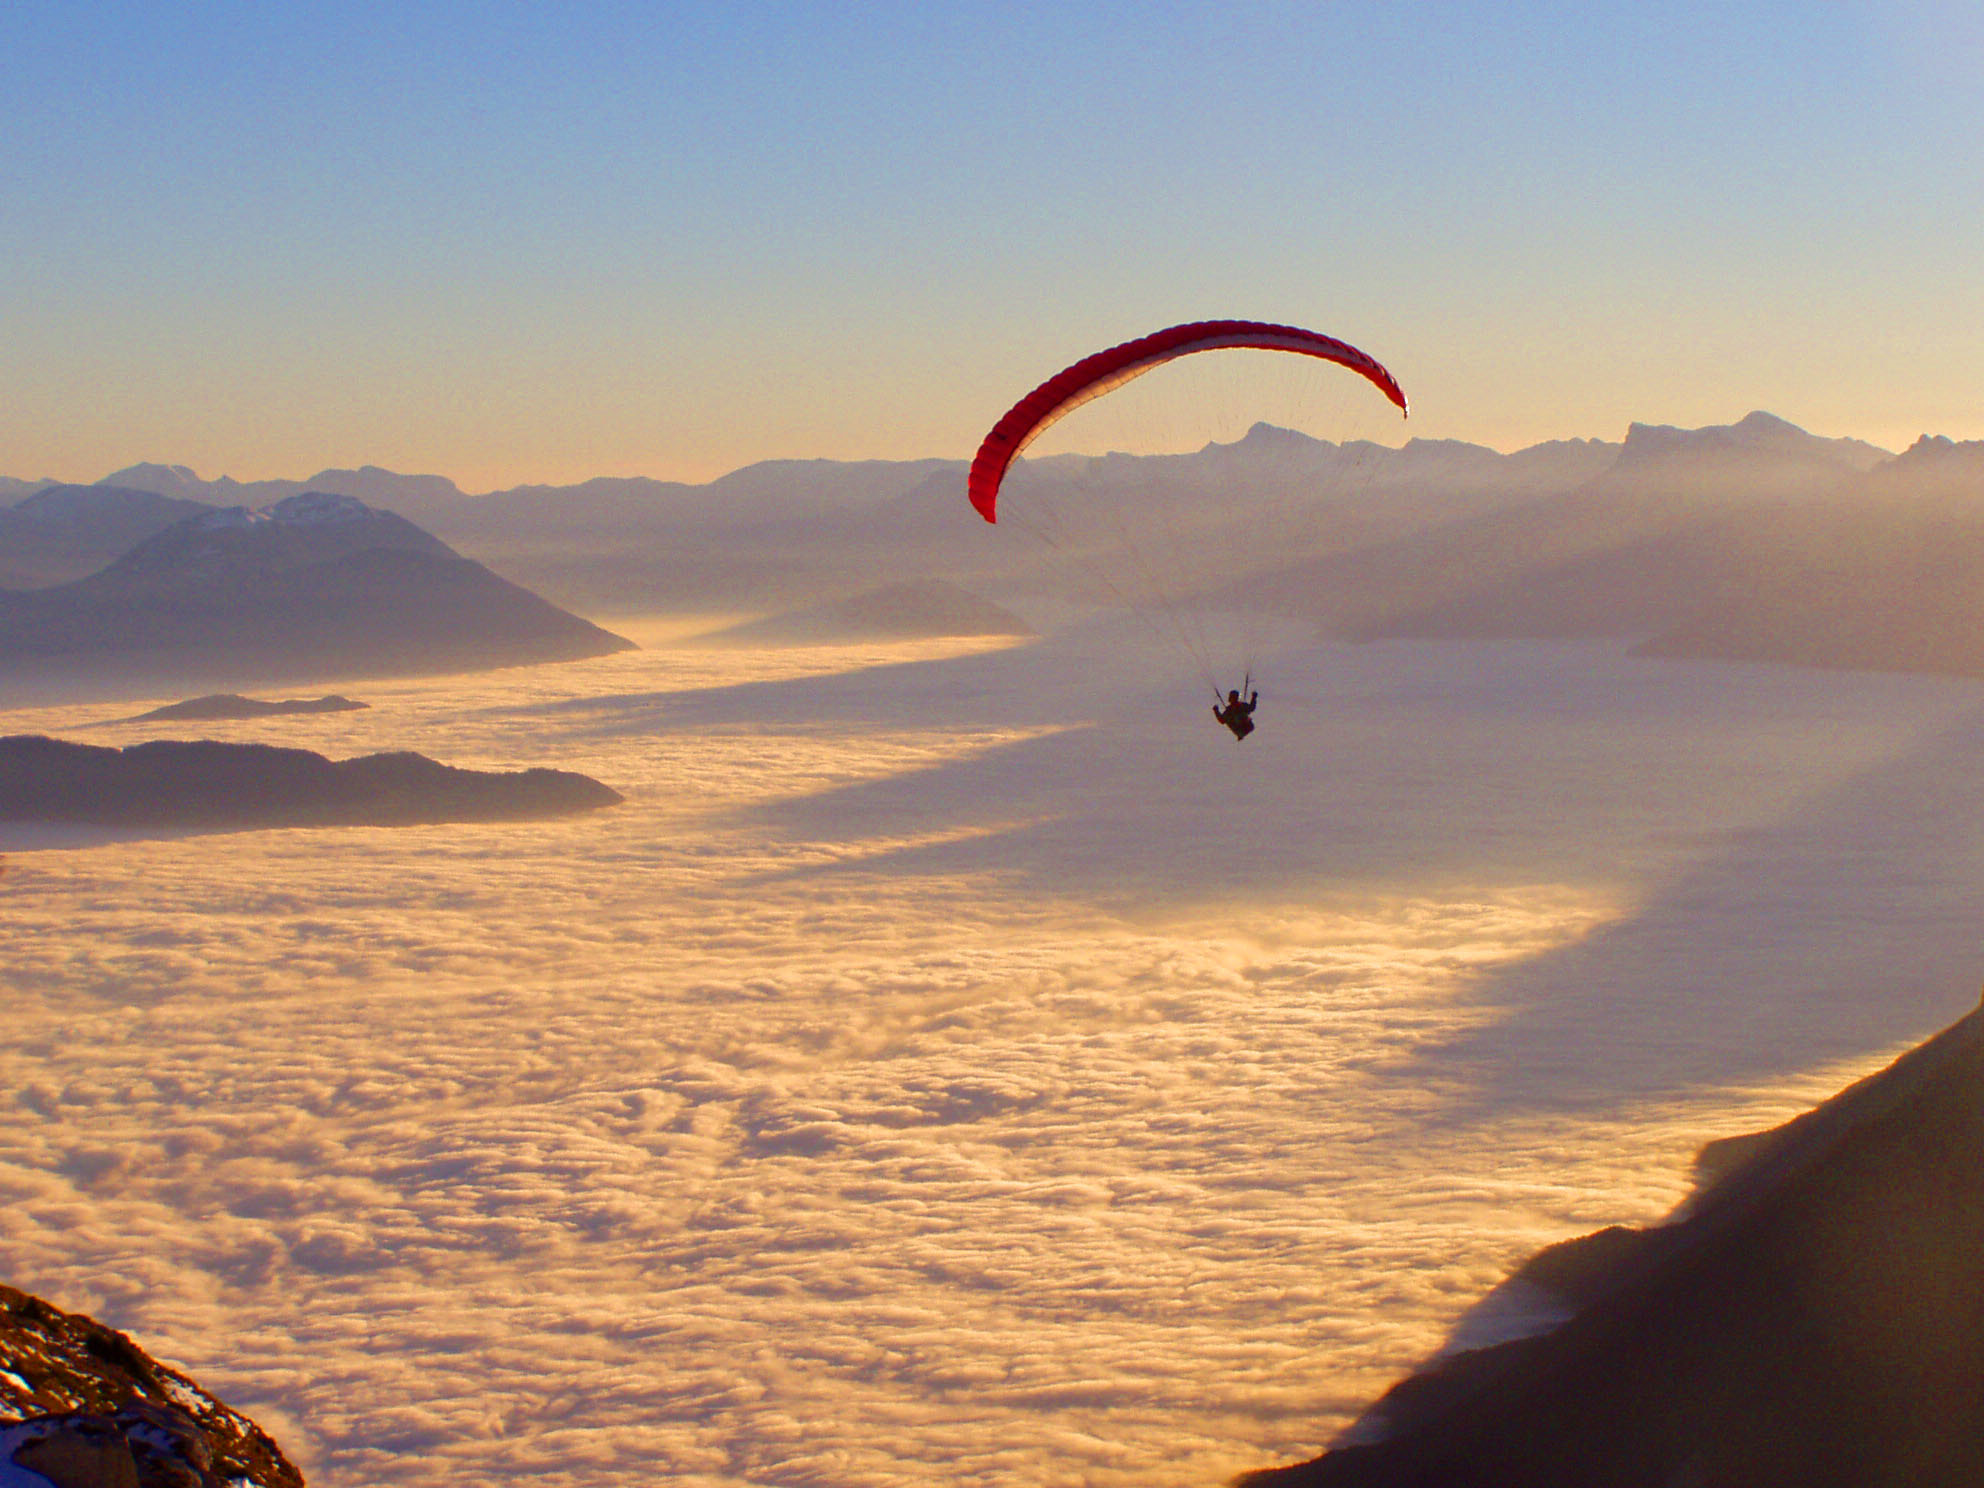 Photograph Fly over the Cloud-sea by Camille Vcr on 500px